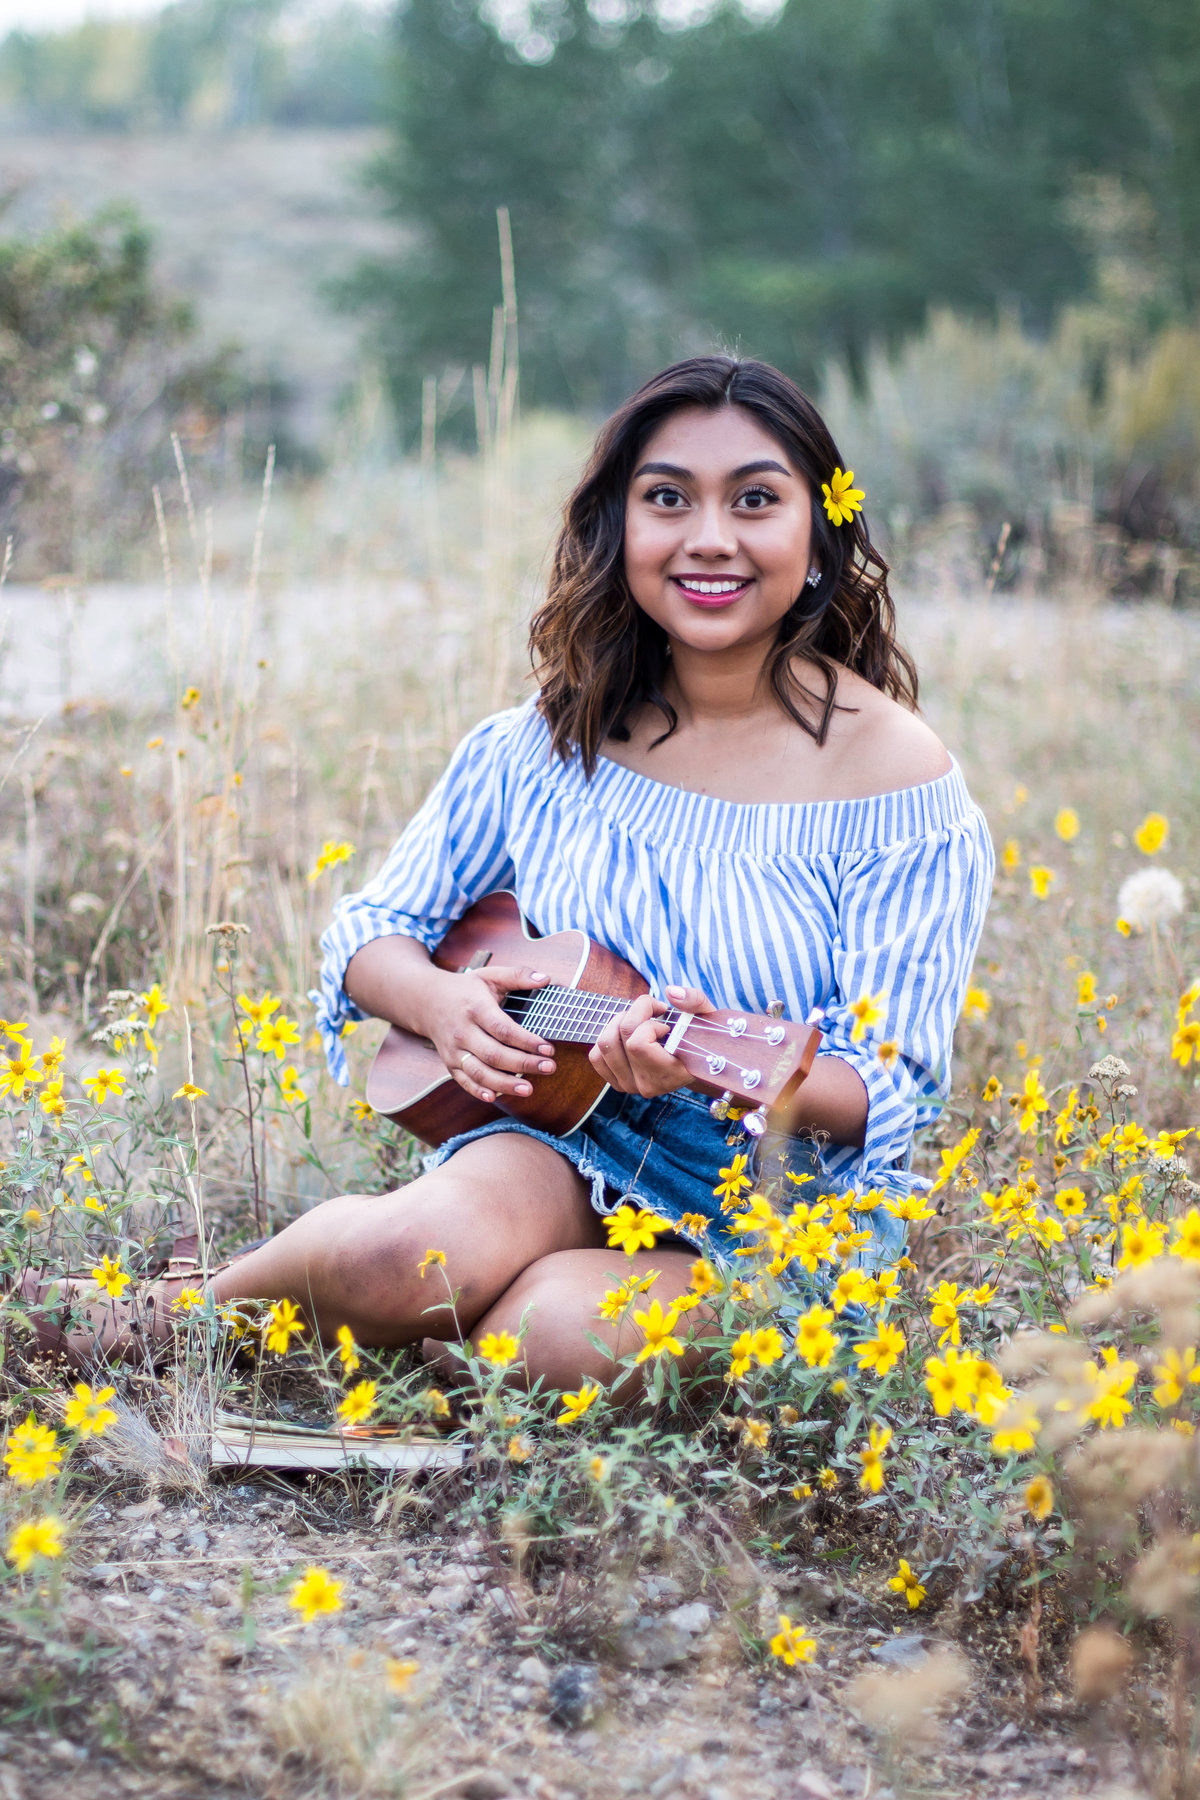 daisy, field, yellow, Senior photos, Teton Valley, Idaho, Grand Targhee Resort Overlook, modern, ukelele, music, fun